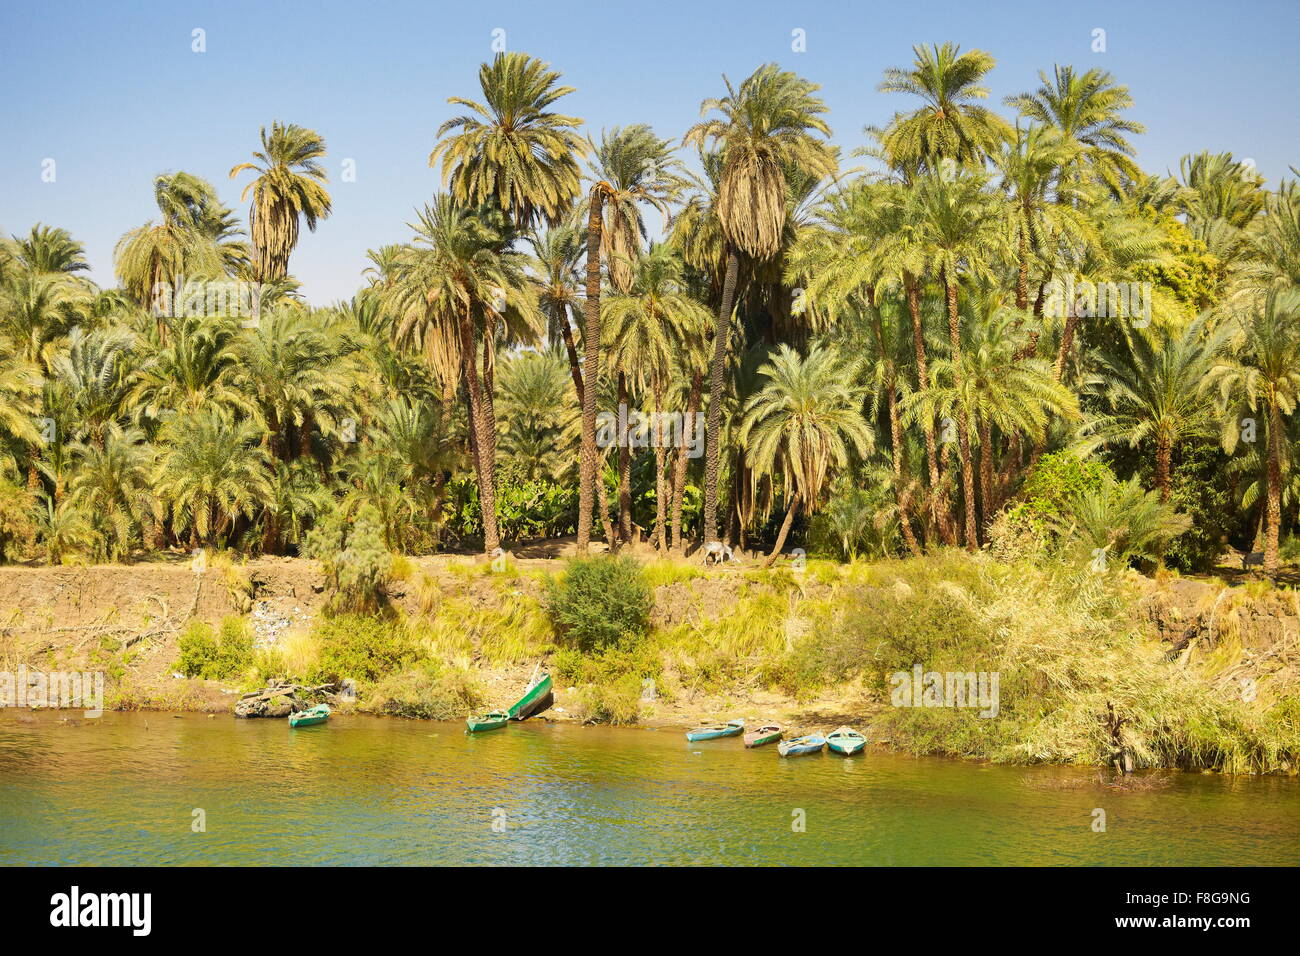 Egypt - bank of the Nile, riverside landscape of the valley of Nile, road to Aswan town, Egypt - Stock Image